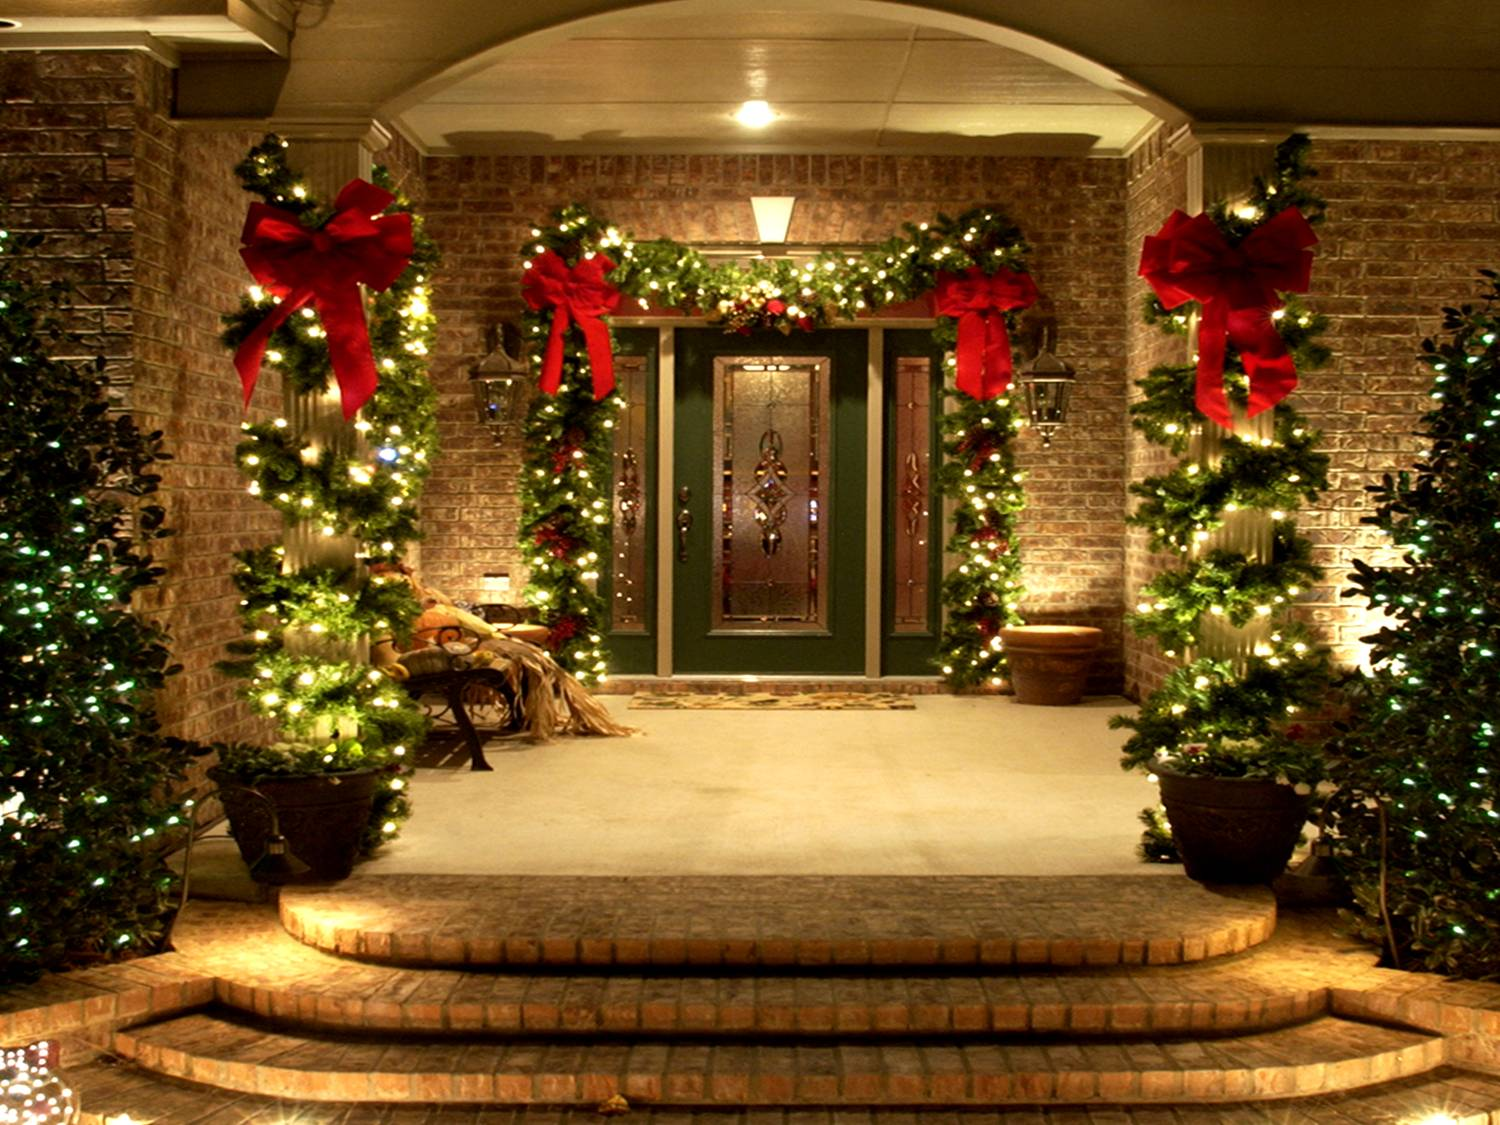 15 dazzling ideas for lighting your surroundings this christmas